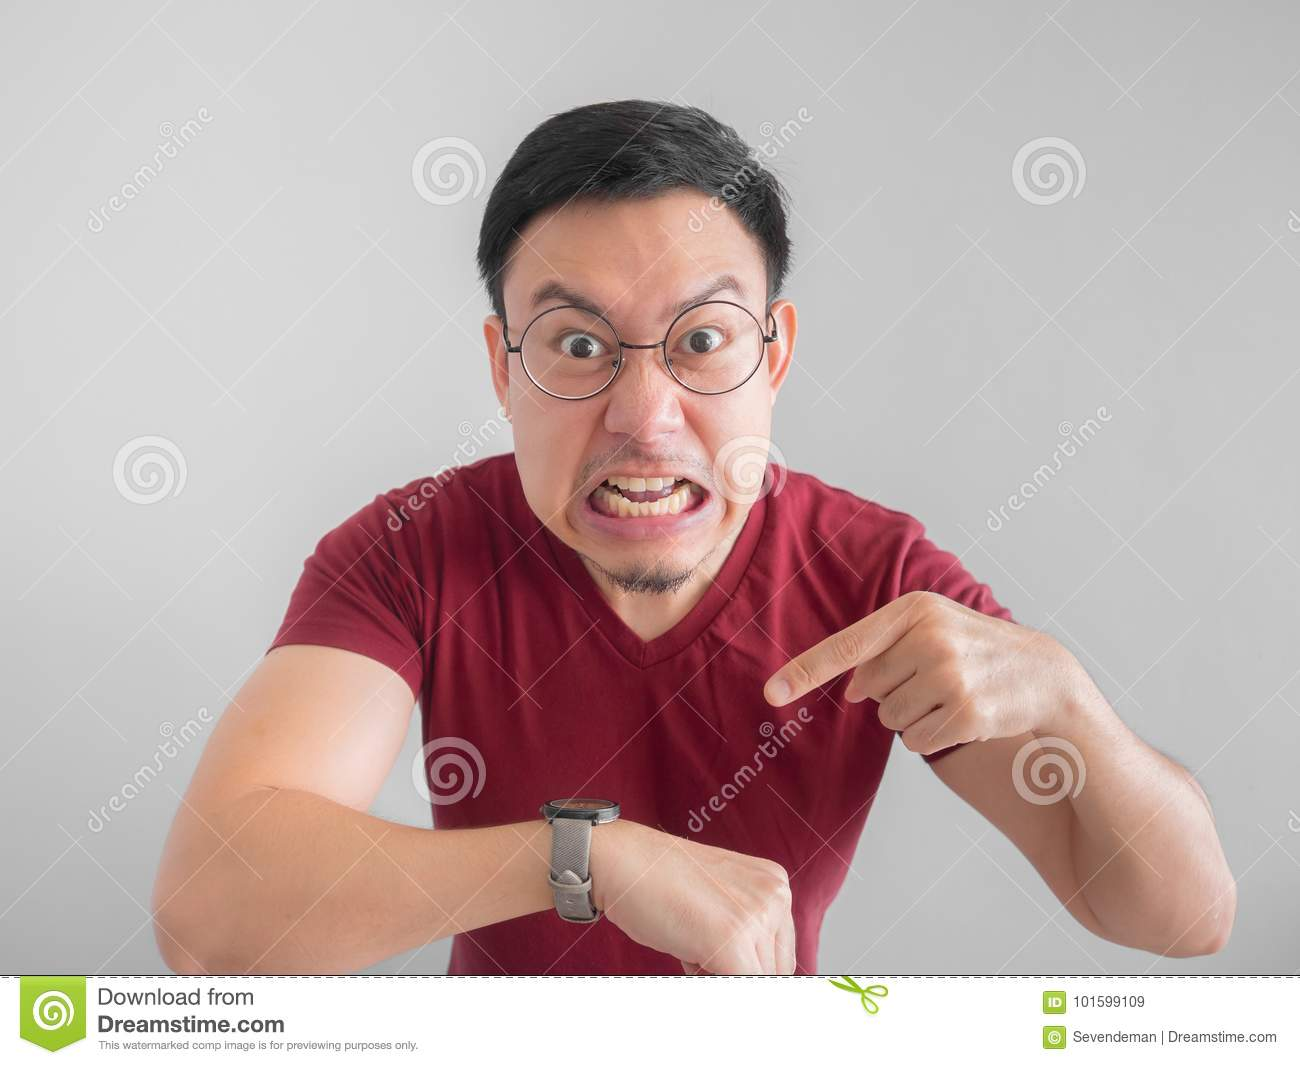 Angry And Unpleasant Face Of Man Is Looking At His Watch